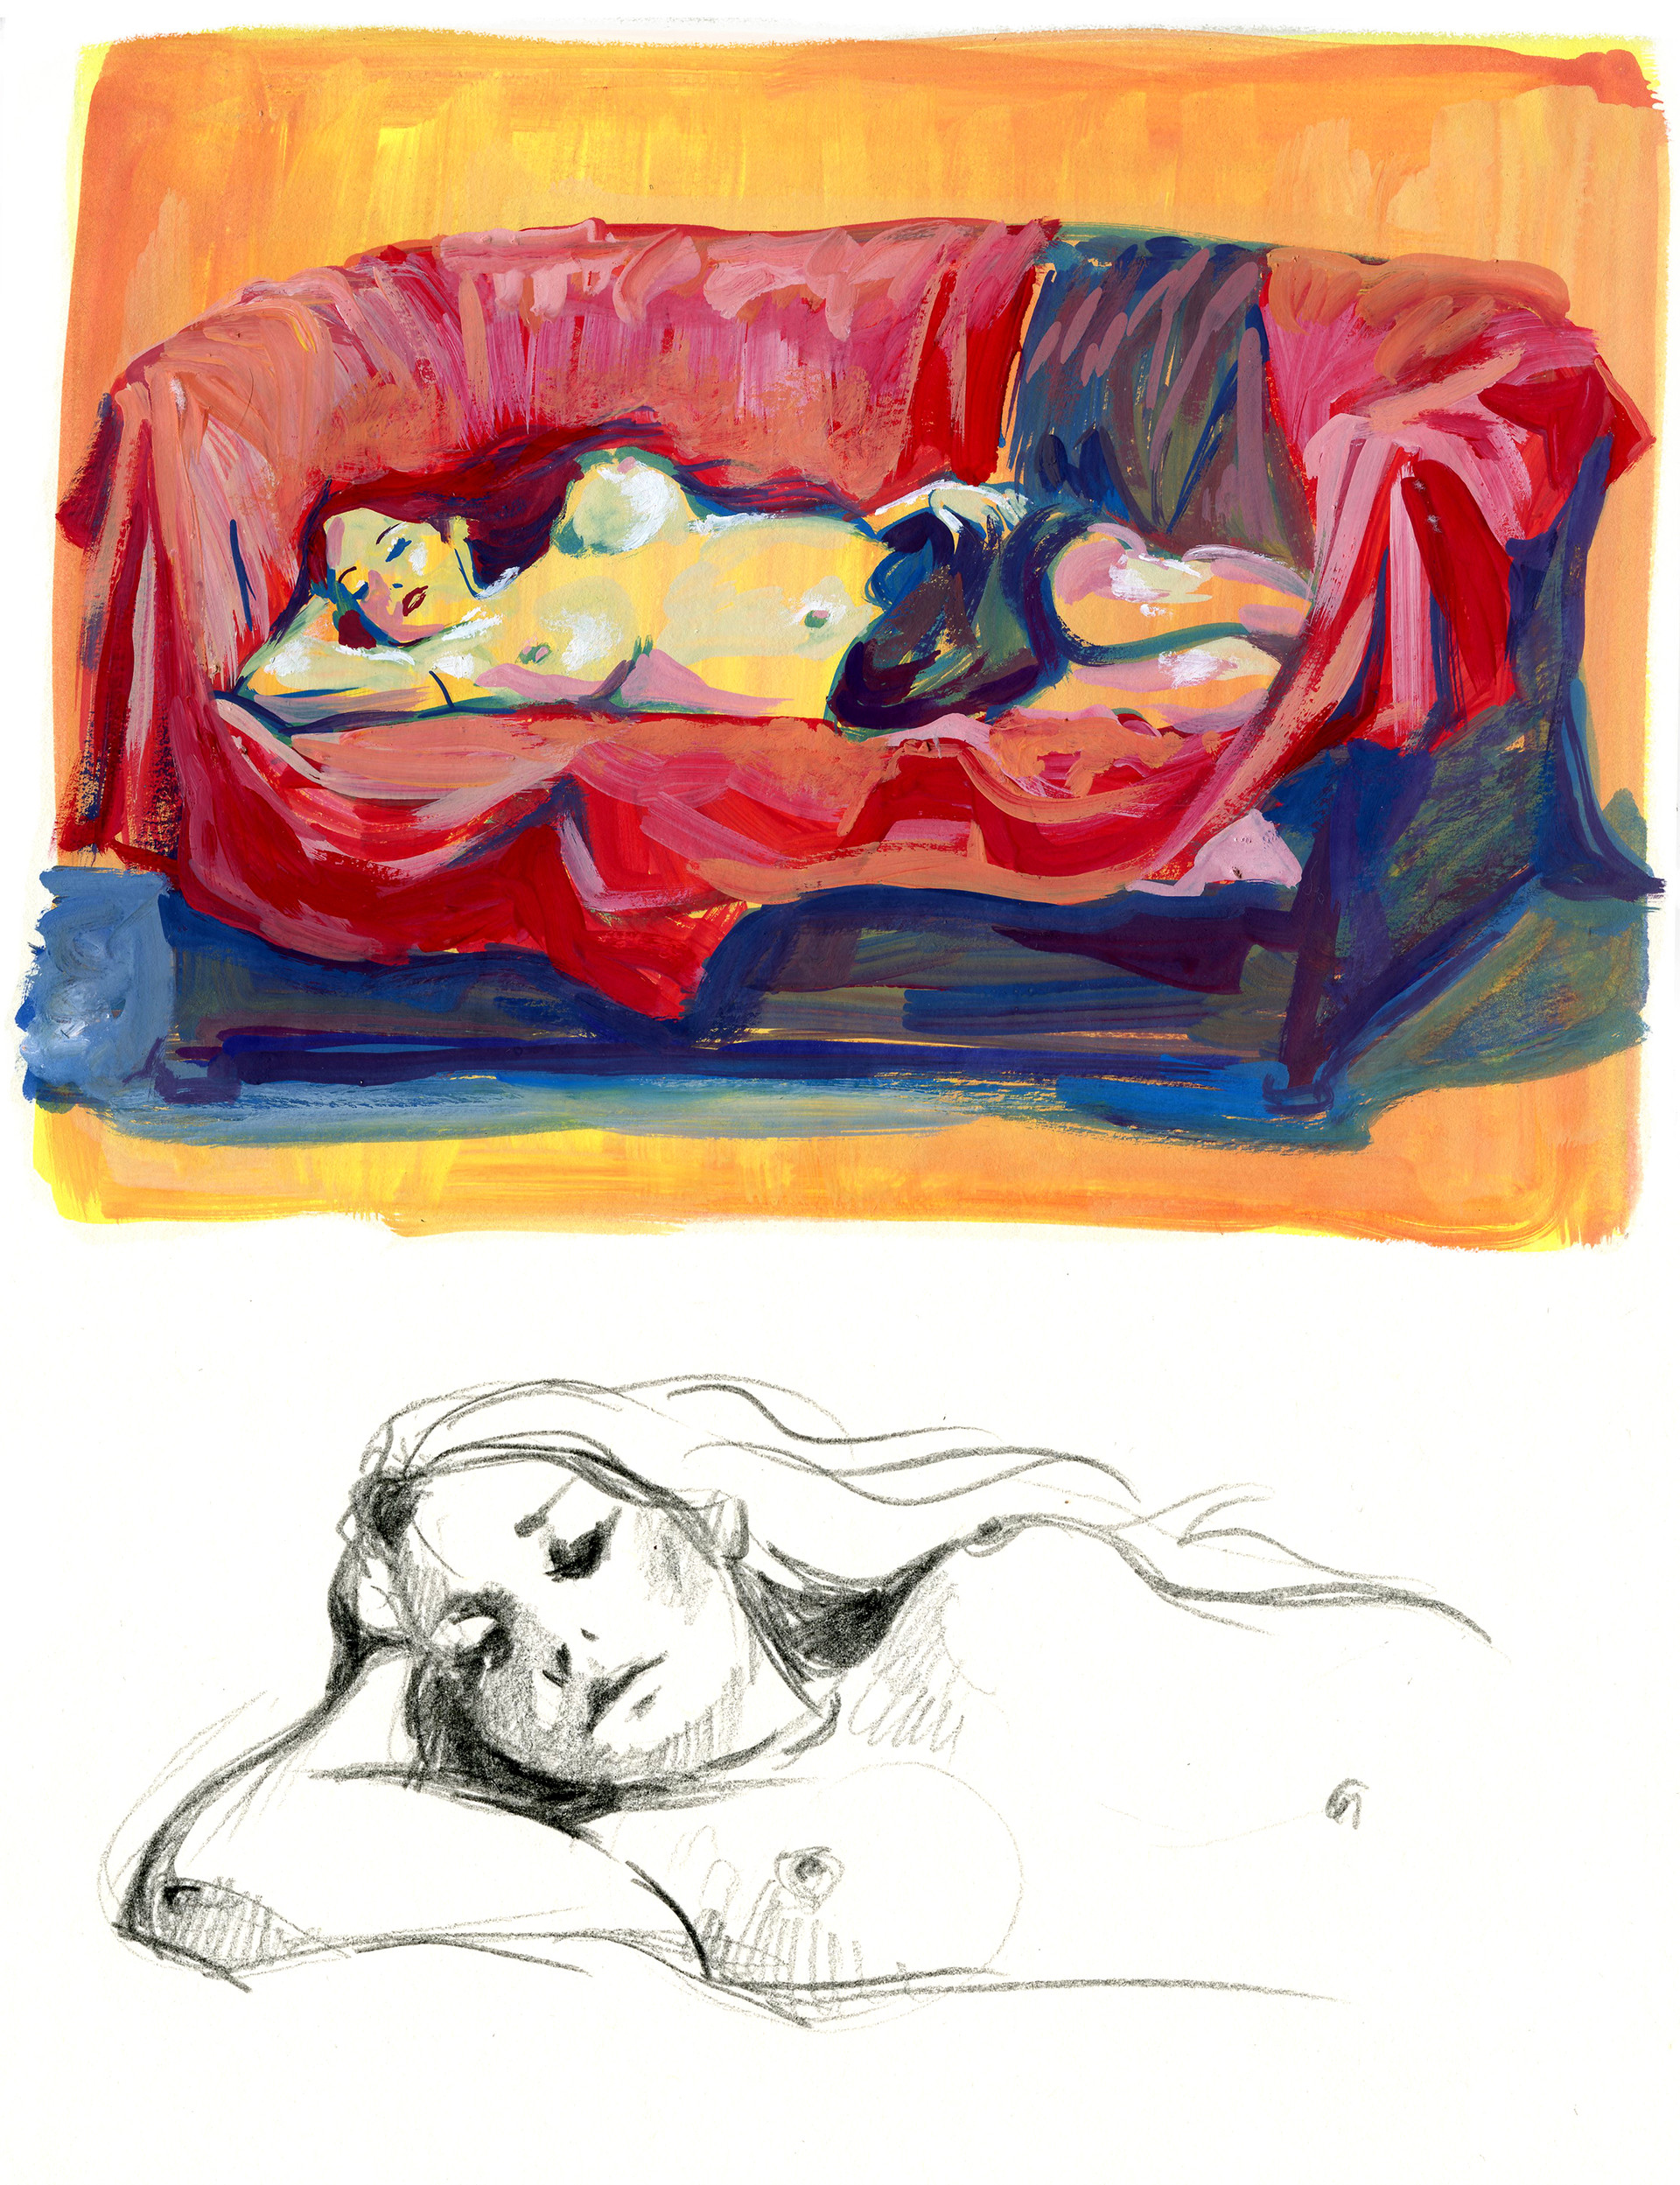 Elisa moriconi 4 10 ottobre the lying girl gouache 01